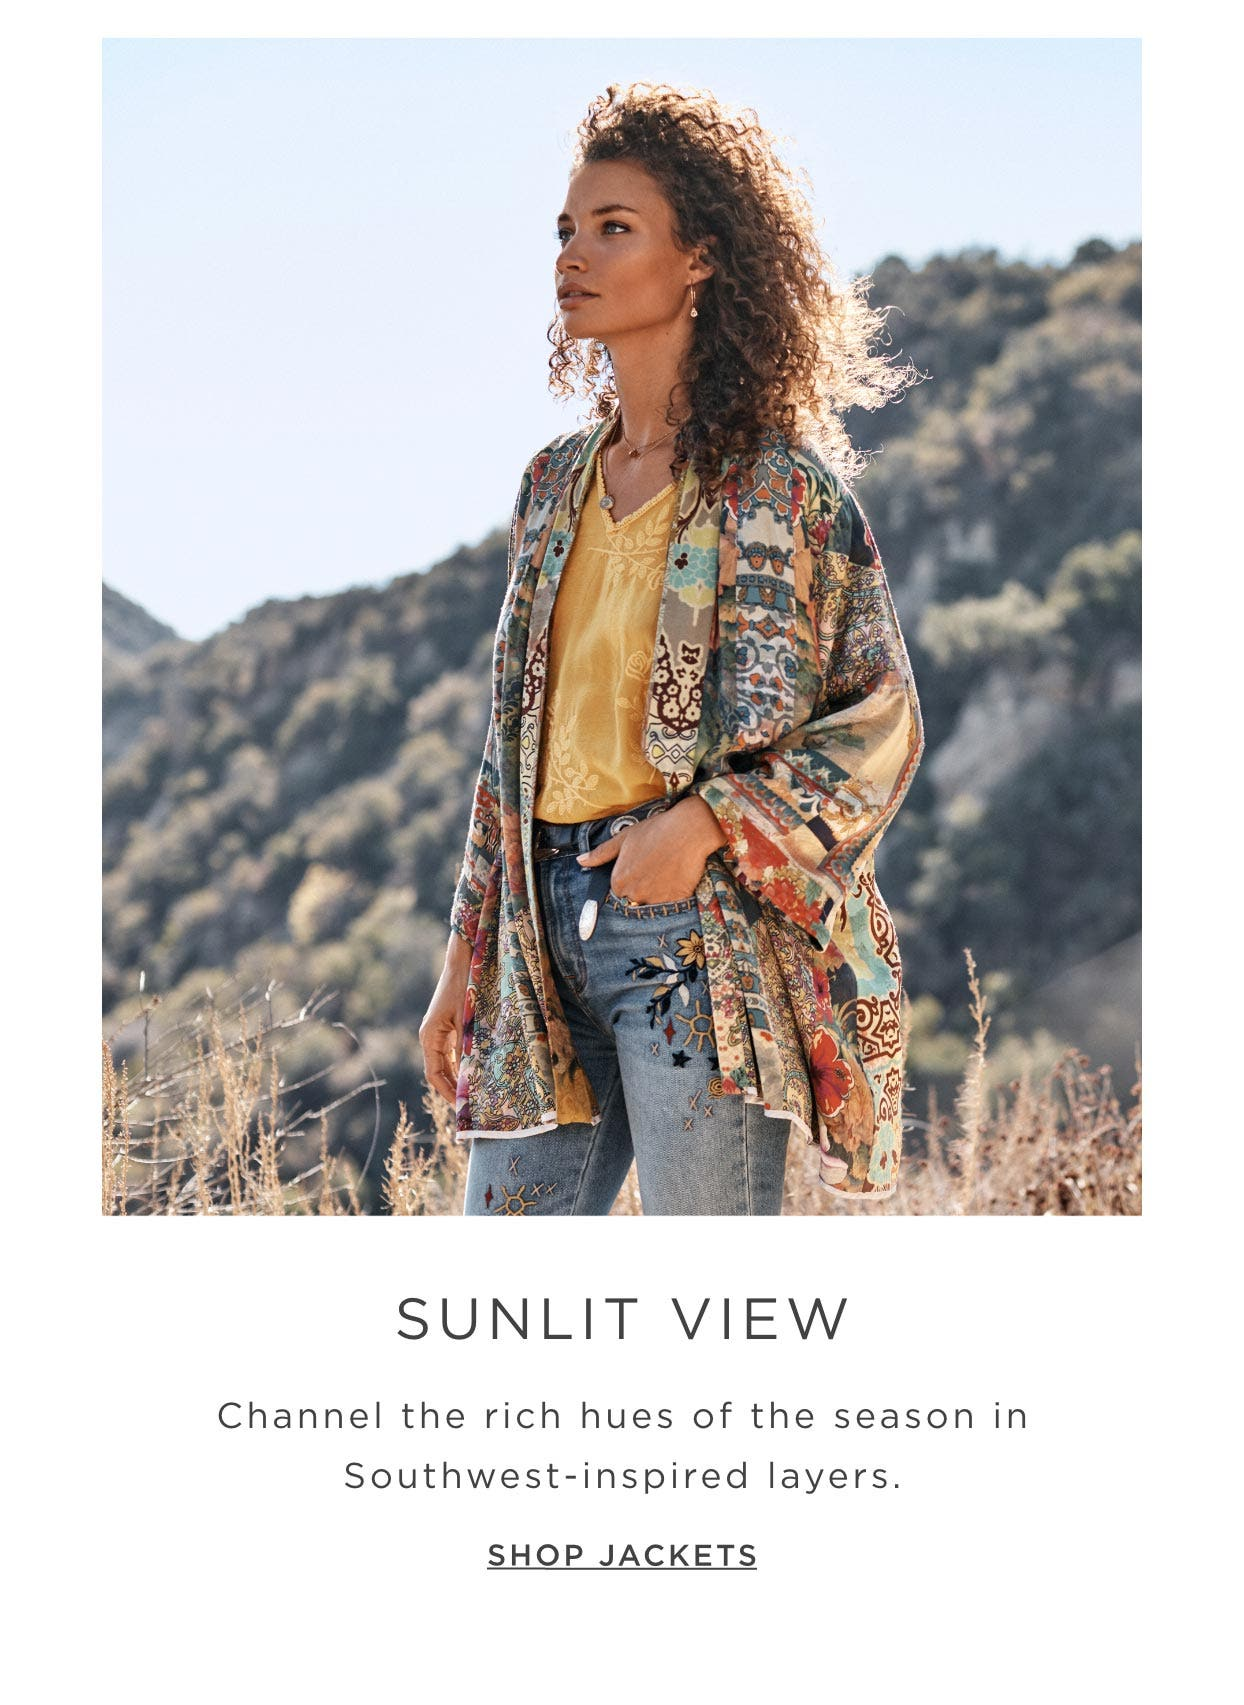 Sunlit View - Channel the rich hues of the season in Southwest-inspired layers - Shop Jackets